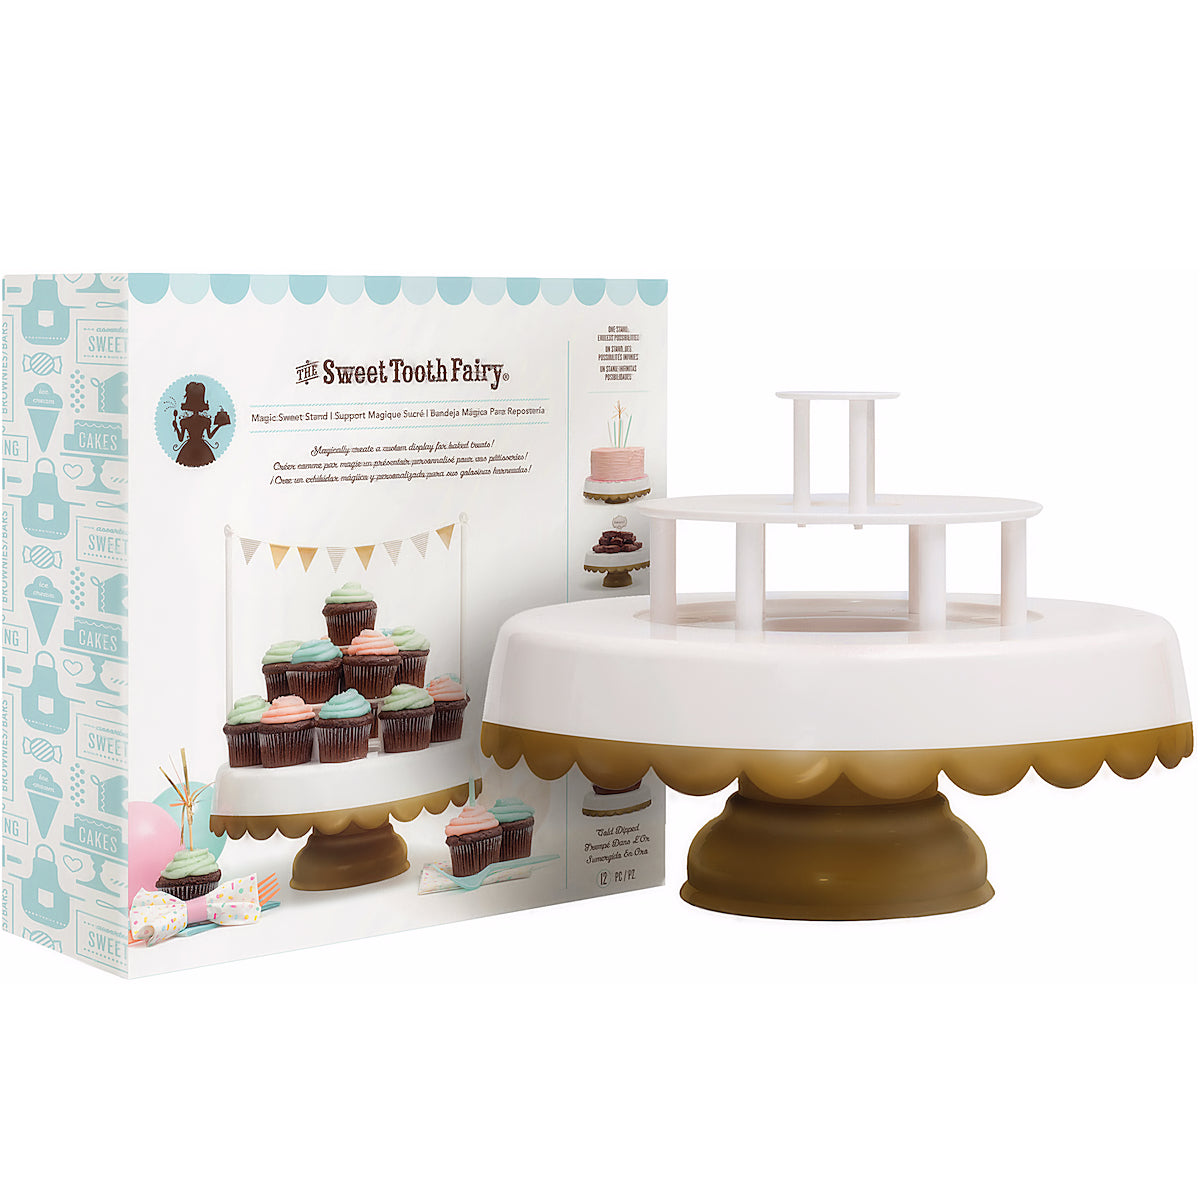 Sweet Tooth Fairy Cake Stand Gold Tipped Gold Cake Stand